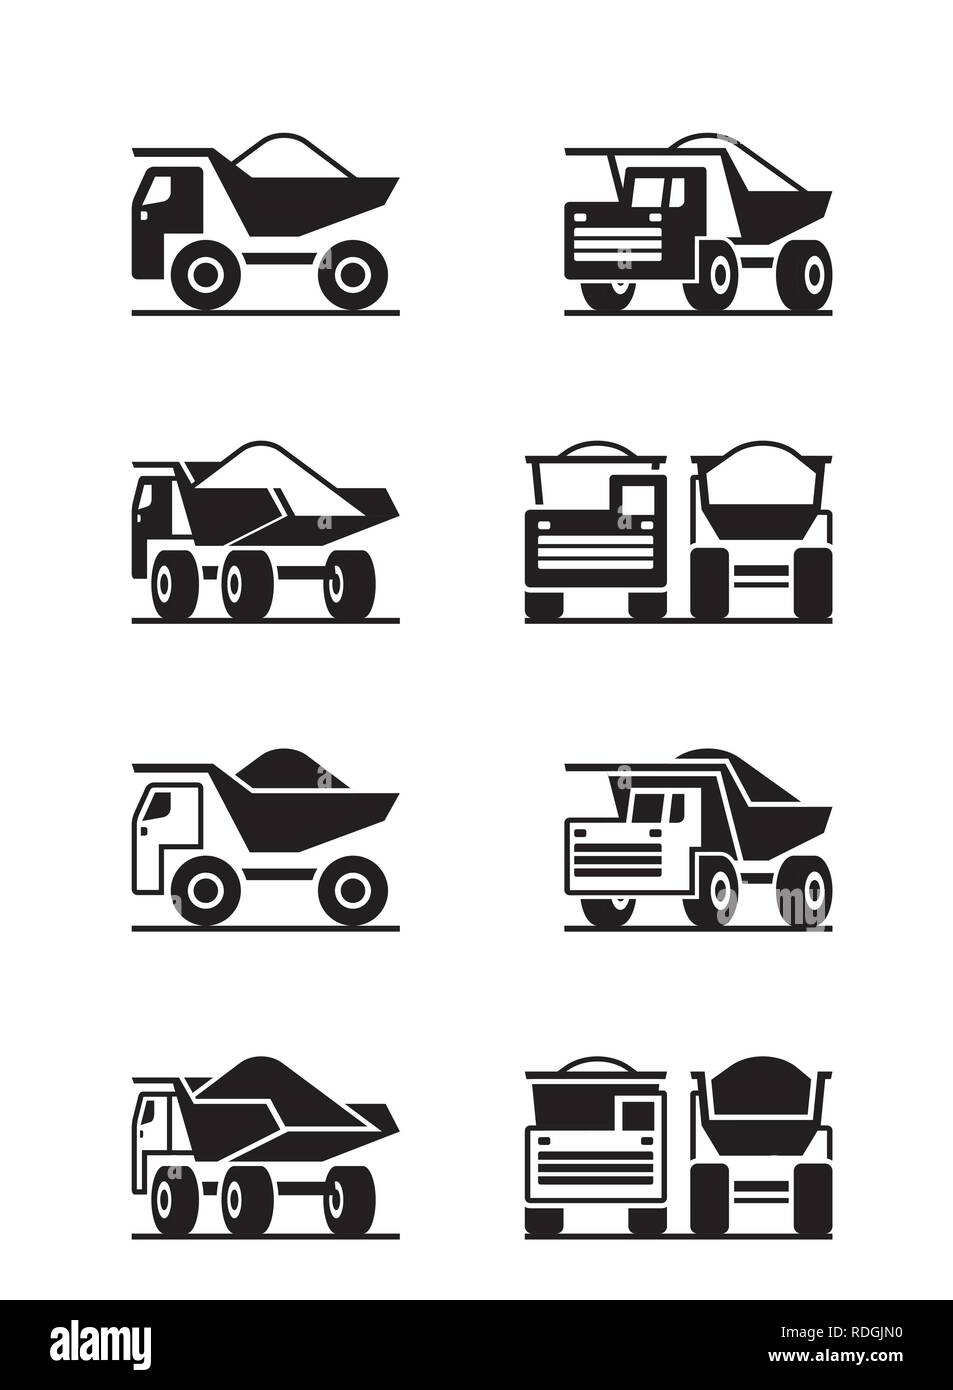 Heavy duty truck in different perspective - vector illustration - Stock Vector